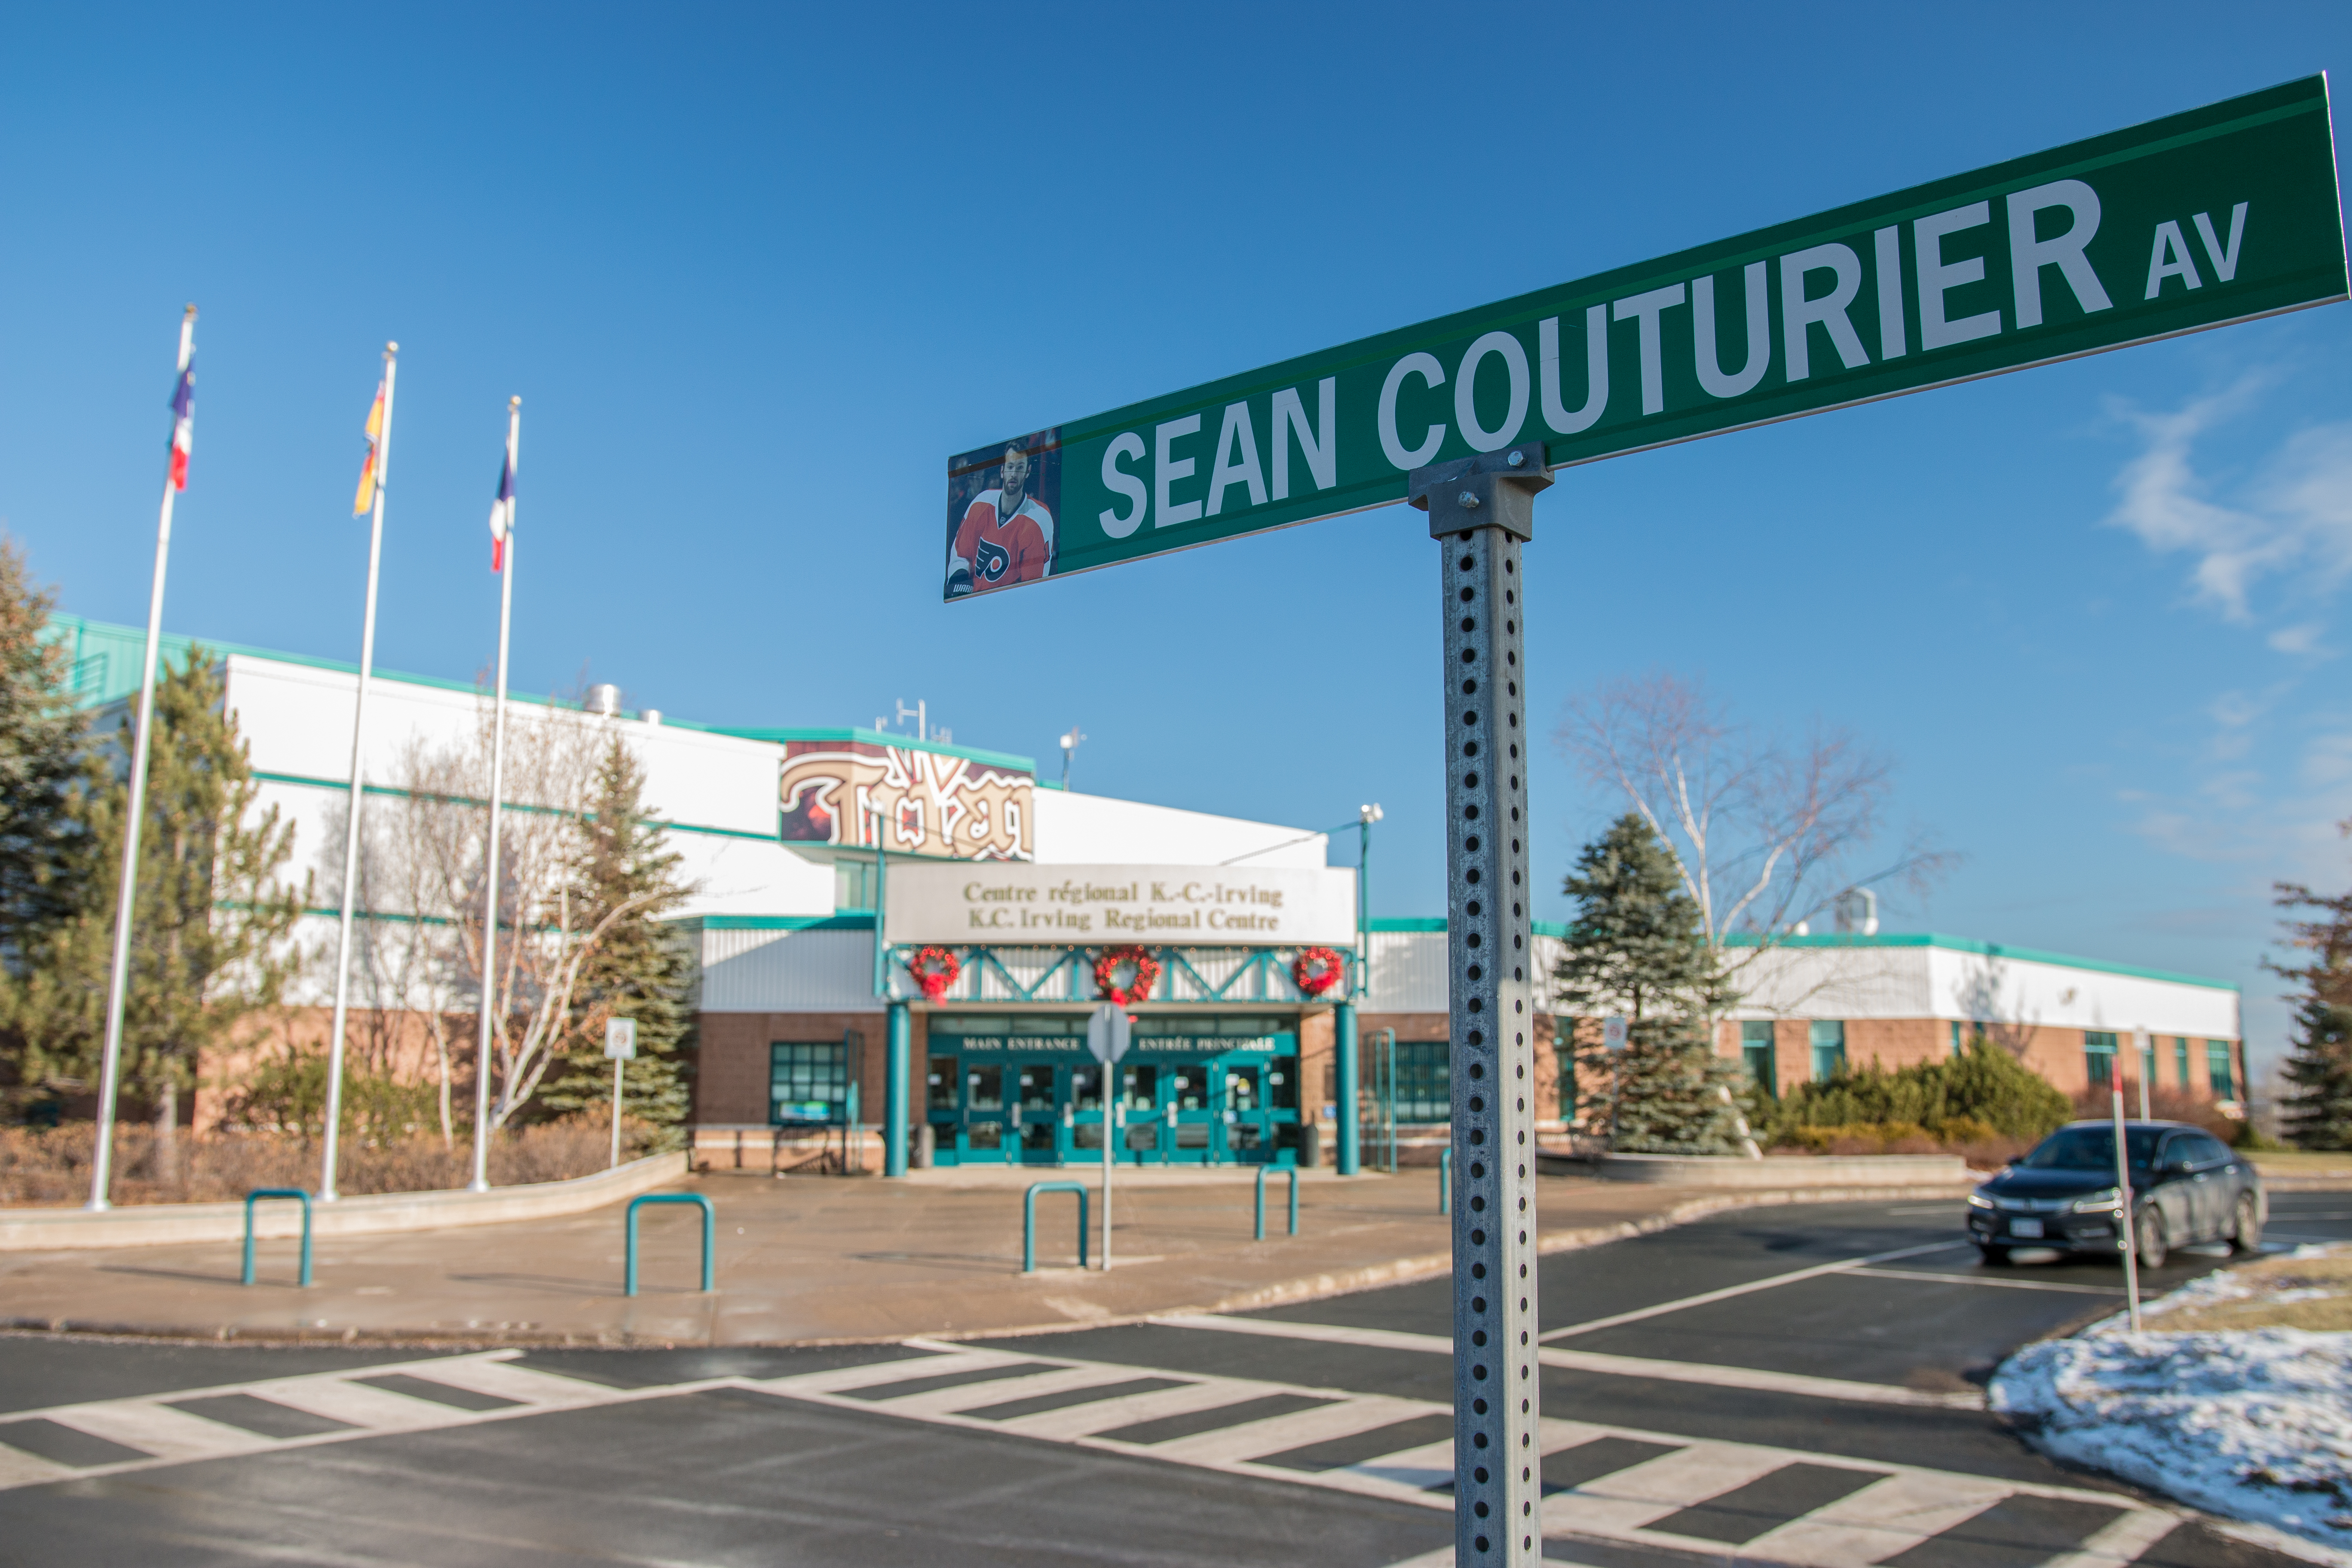 Last year the city of Bathurst N.B, where Sean Couturier grew up and played minor hockey, named the city road after him. The road leads to the K.C. Irving Regional Centre, home of the Acadie-Bathurst Titan.